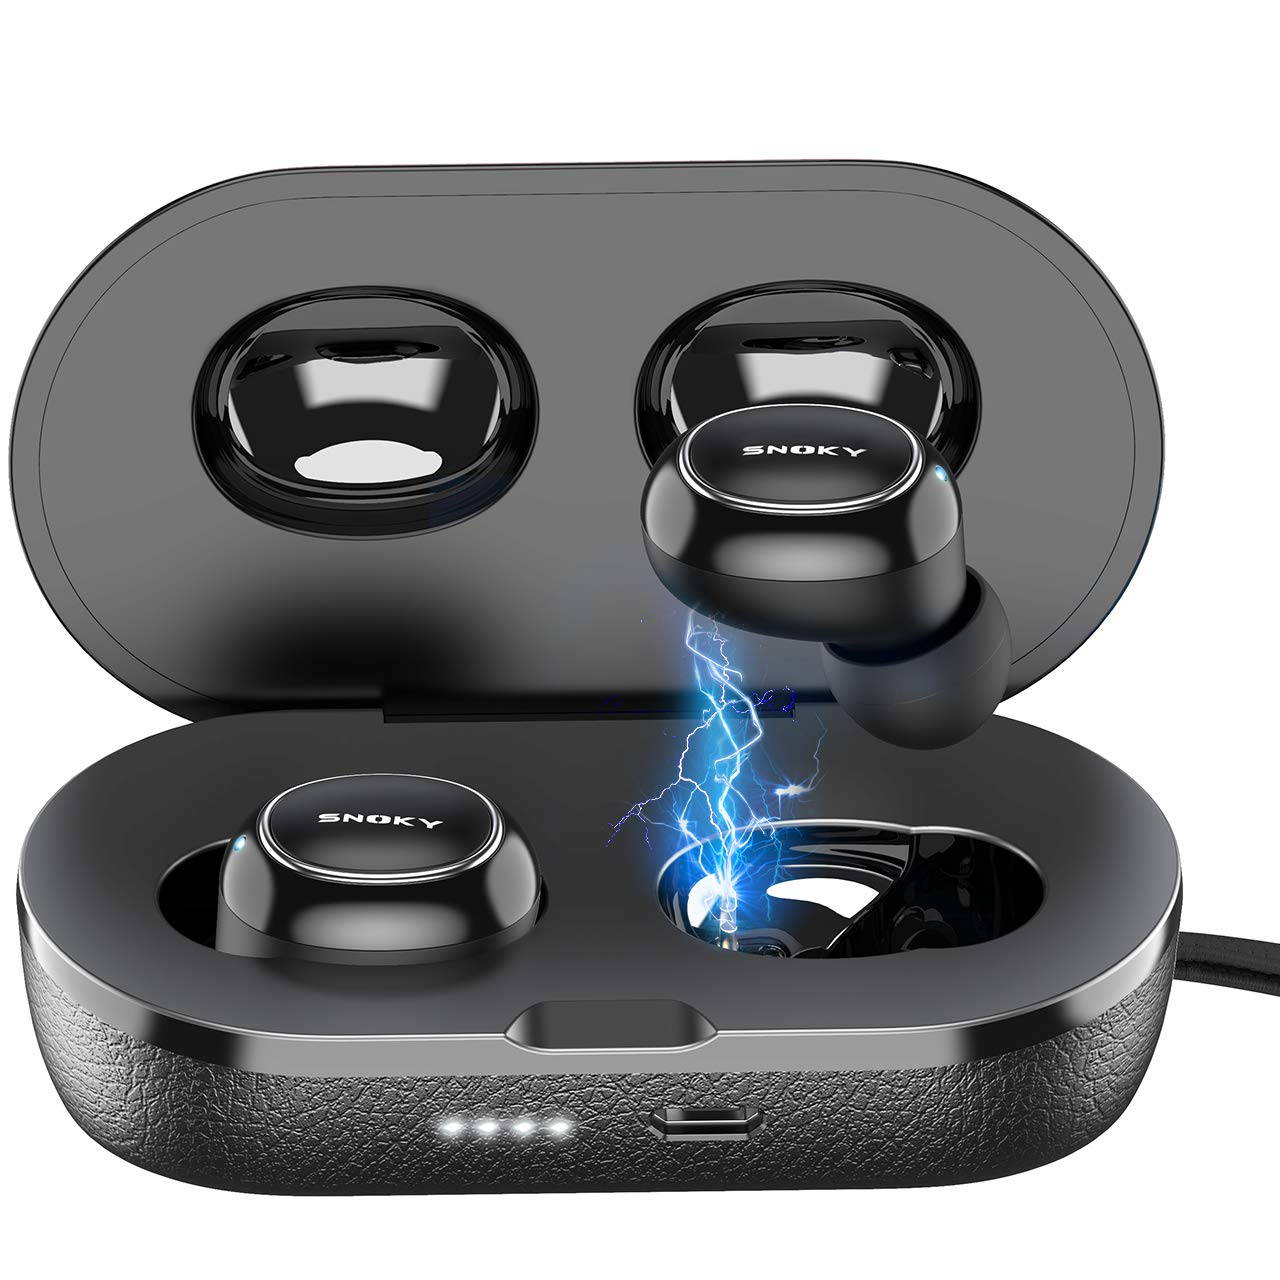 Auriculares Earbuds Inalam. Snoky Black IPX7 BD92